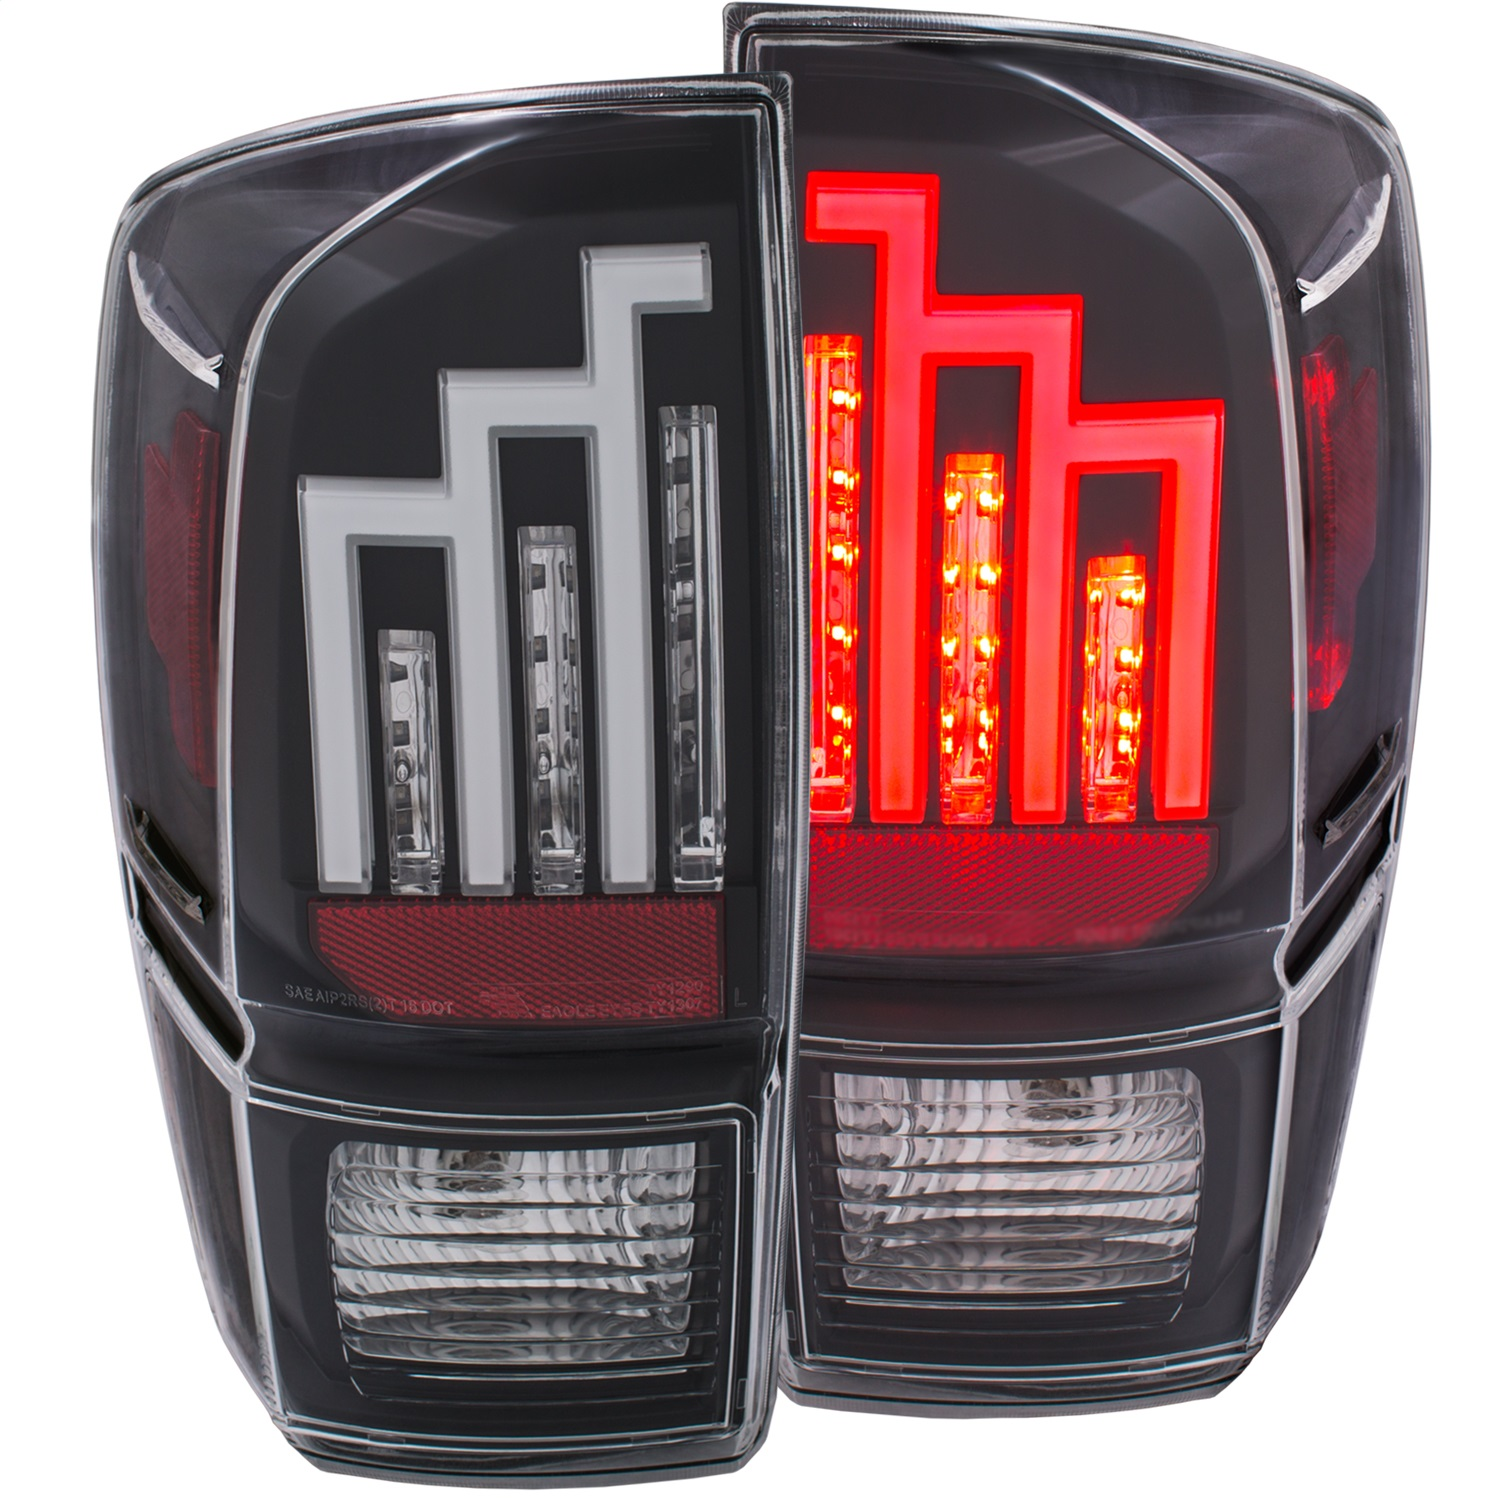 Anzo USA 311281 Tail Light Assembly Fits 16-19 Tacoma